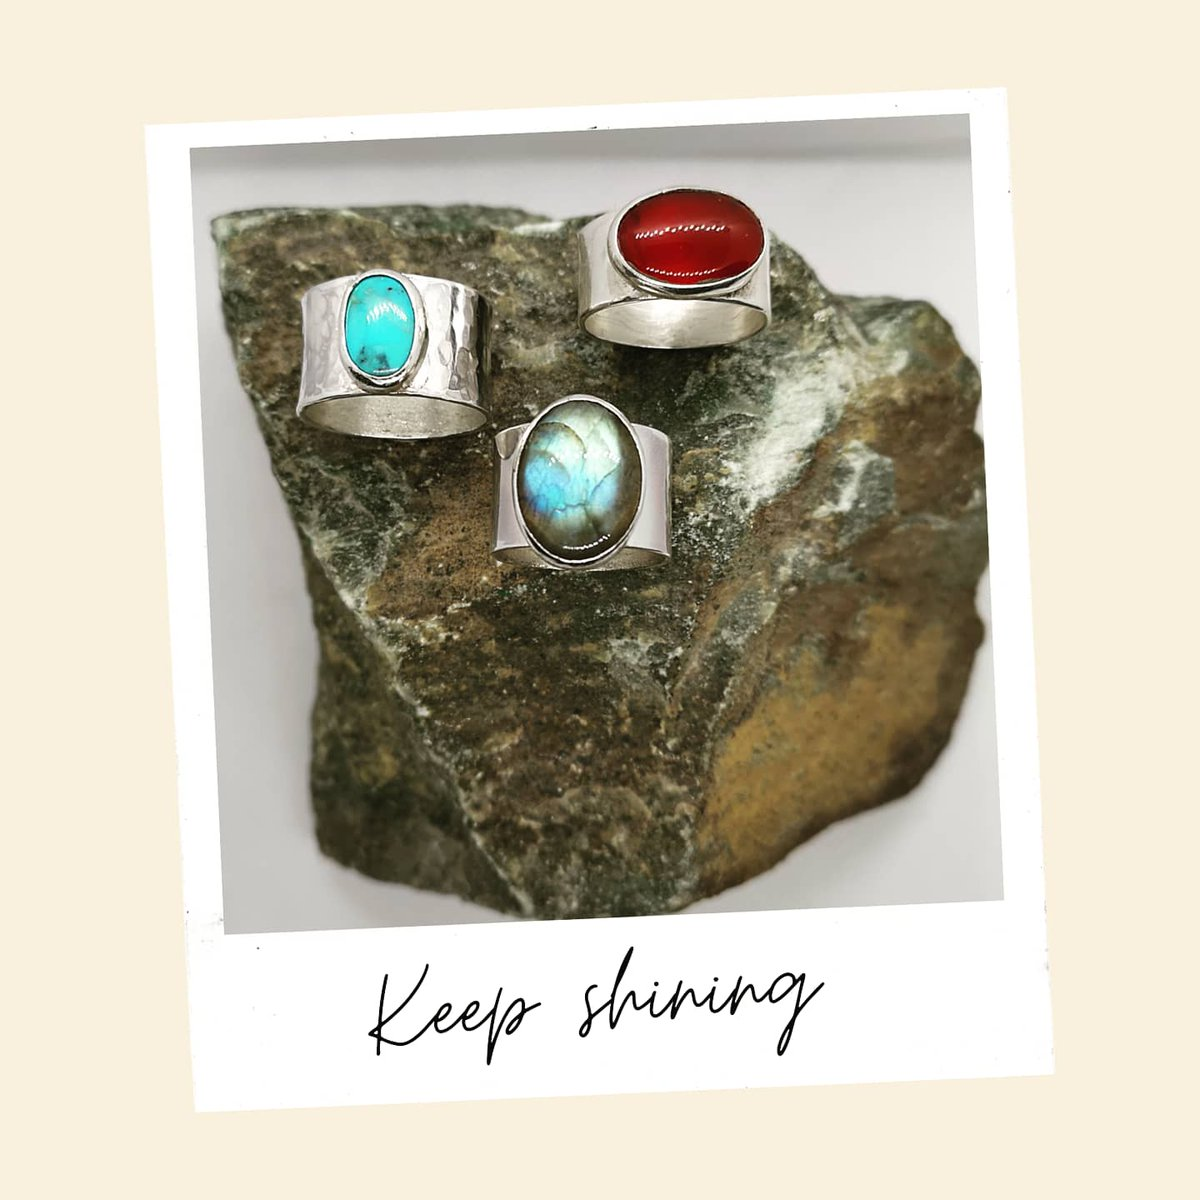 Feeling the love. We want to pass it on to you.NHS members will receive a further discount. Fre delivery as always. DM for info. Keep shining x #nhs #love #carnelian #labradorite #Turquoise #Egyptian #eyeofhorus #hieroglyph #ootd #potd #silver #treasure #youdoyou #l4l #nofilter